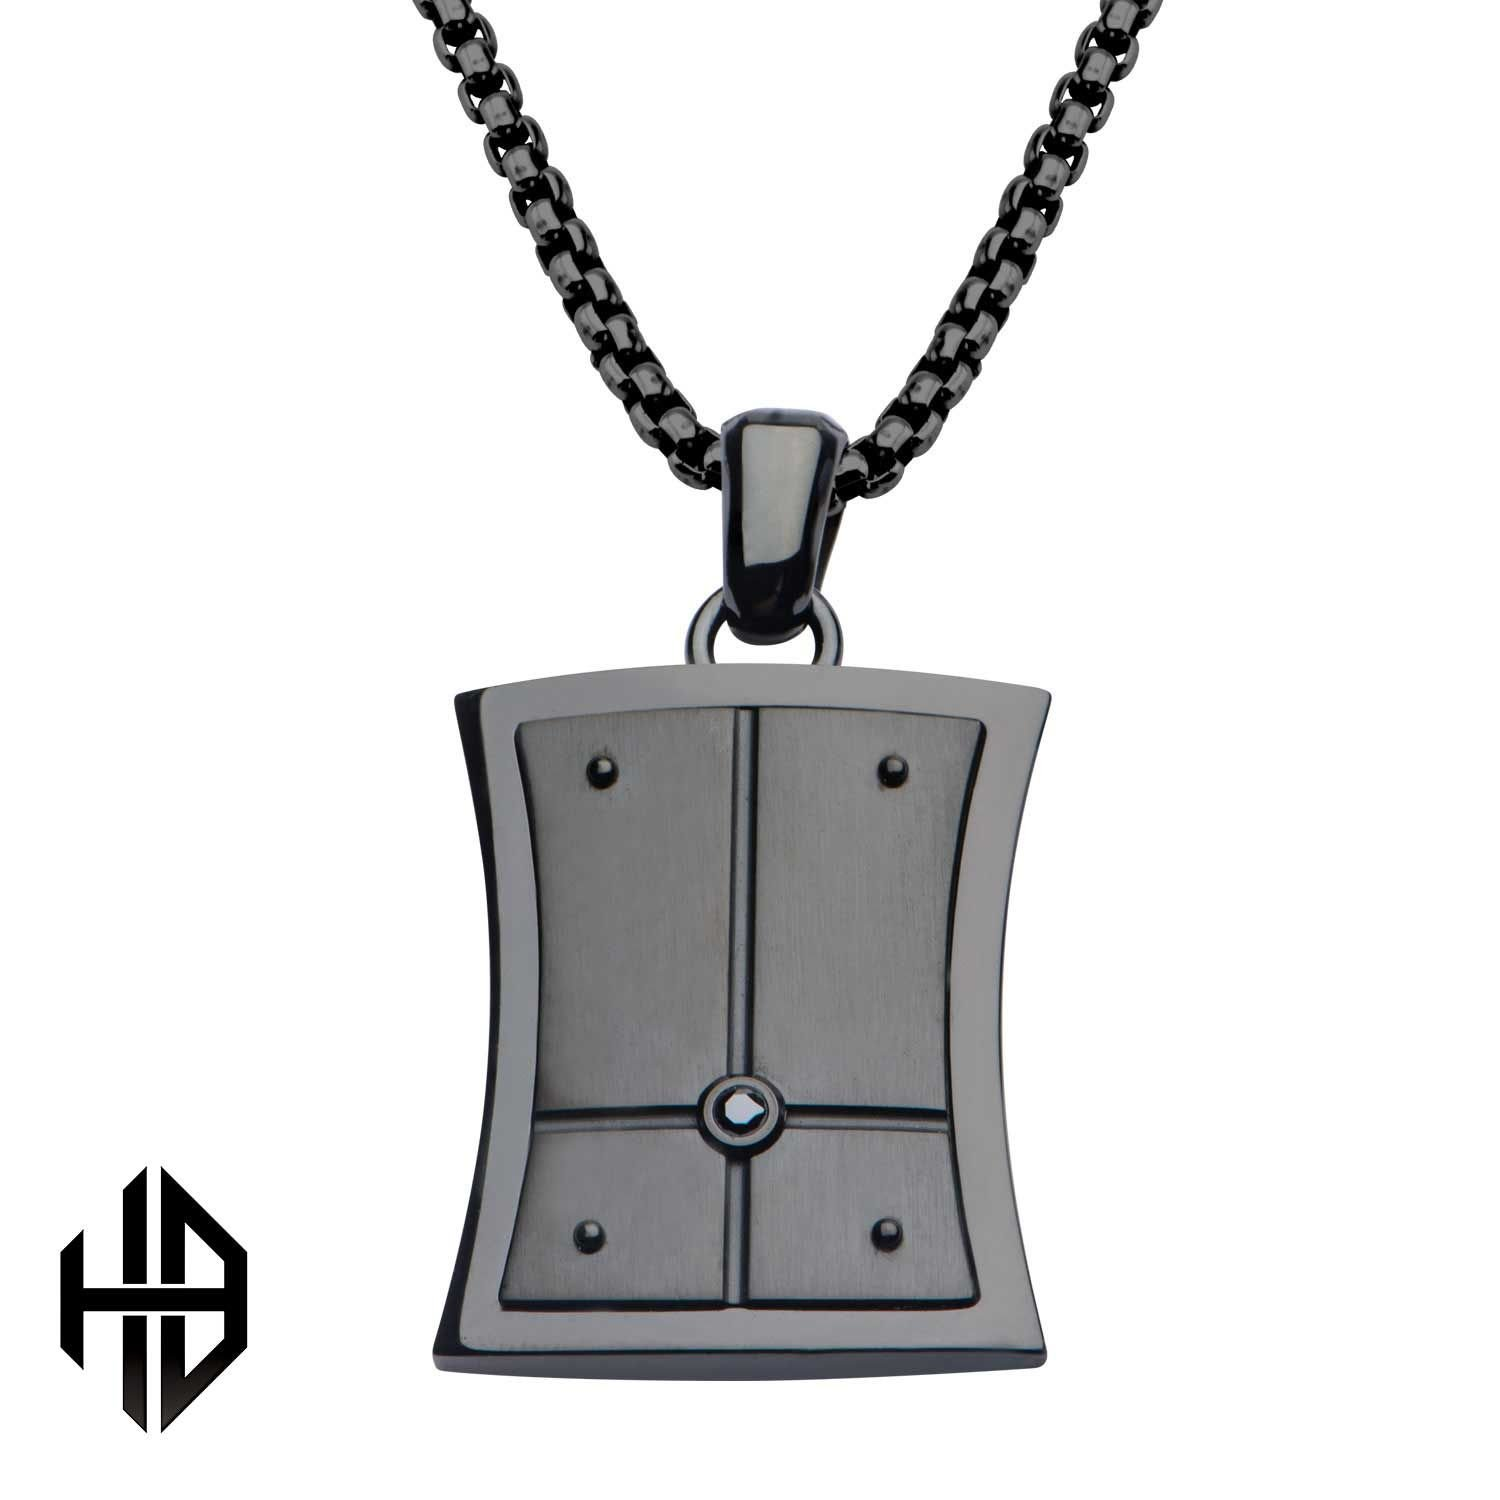 Rare Hills Hollis Bahringer Black Plated with Black-A 2.5 Diamond Dog Tag Pendant with Chain